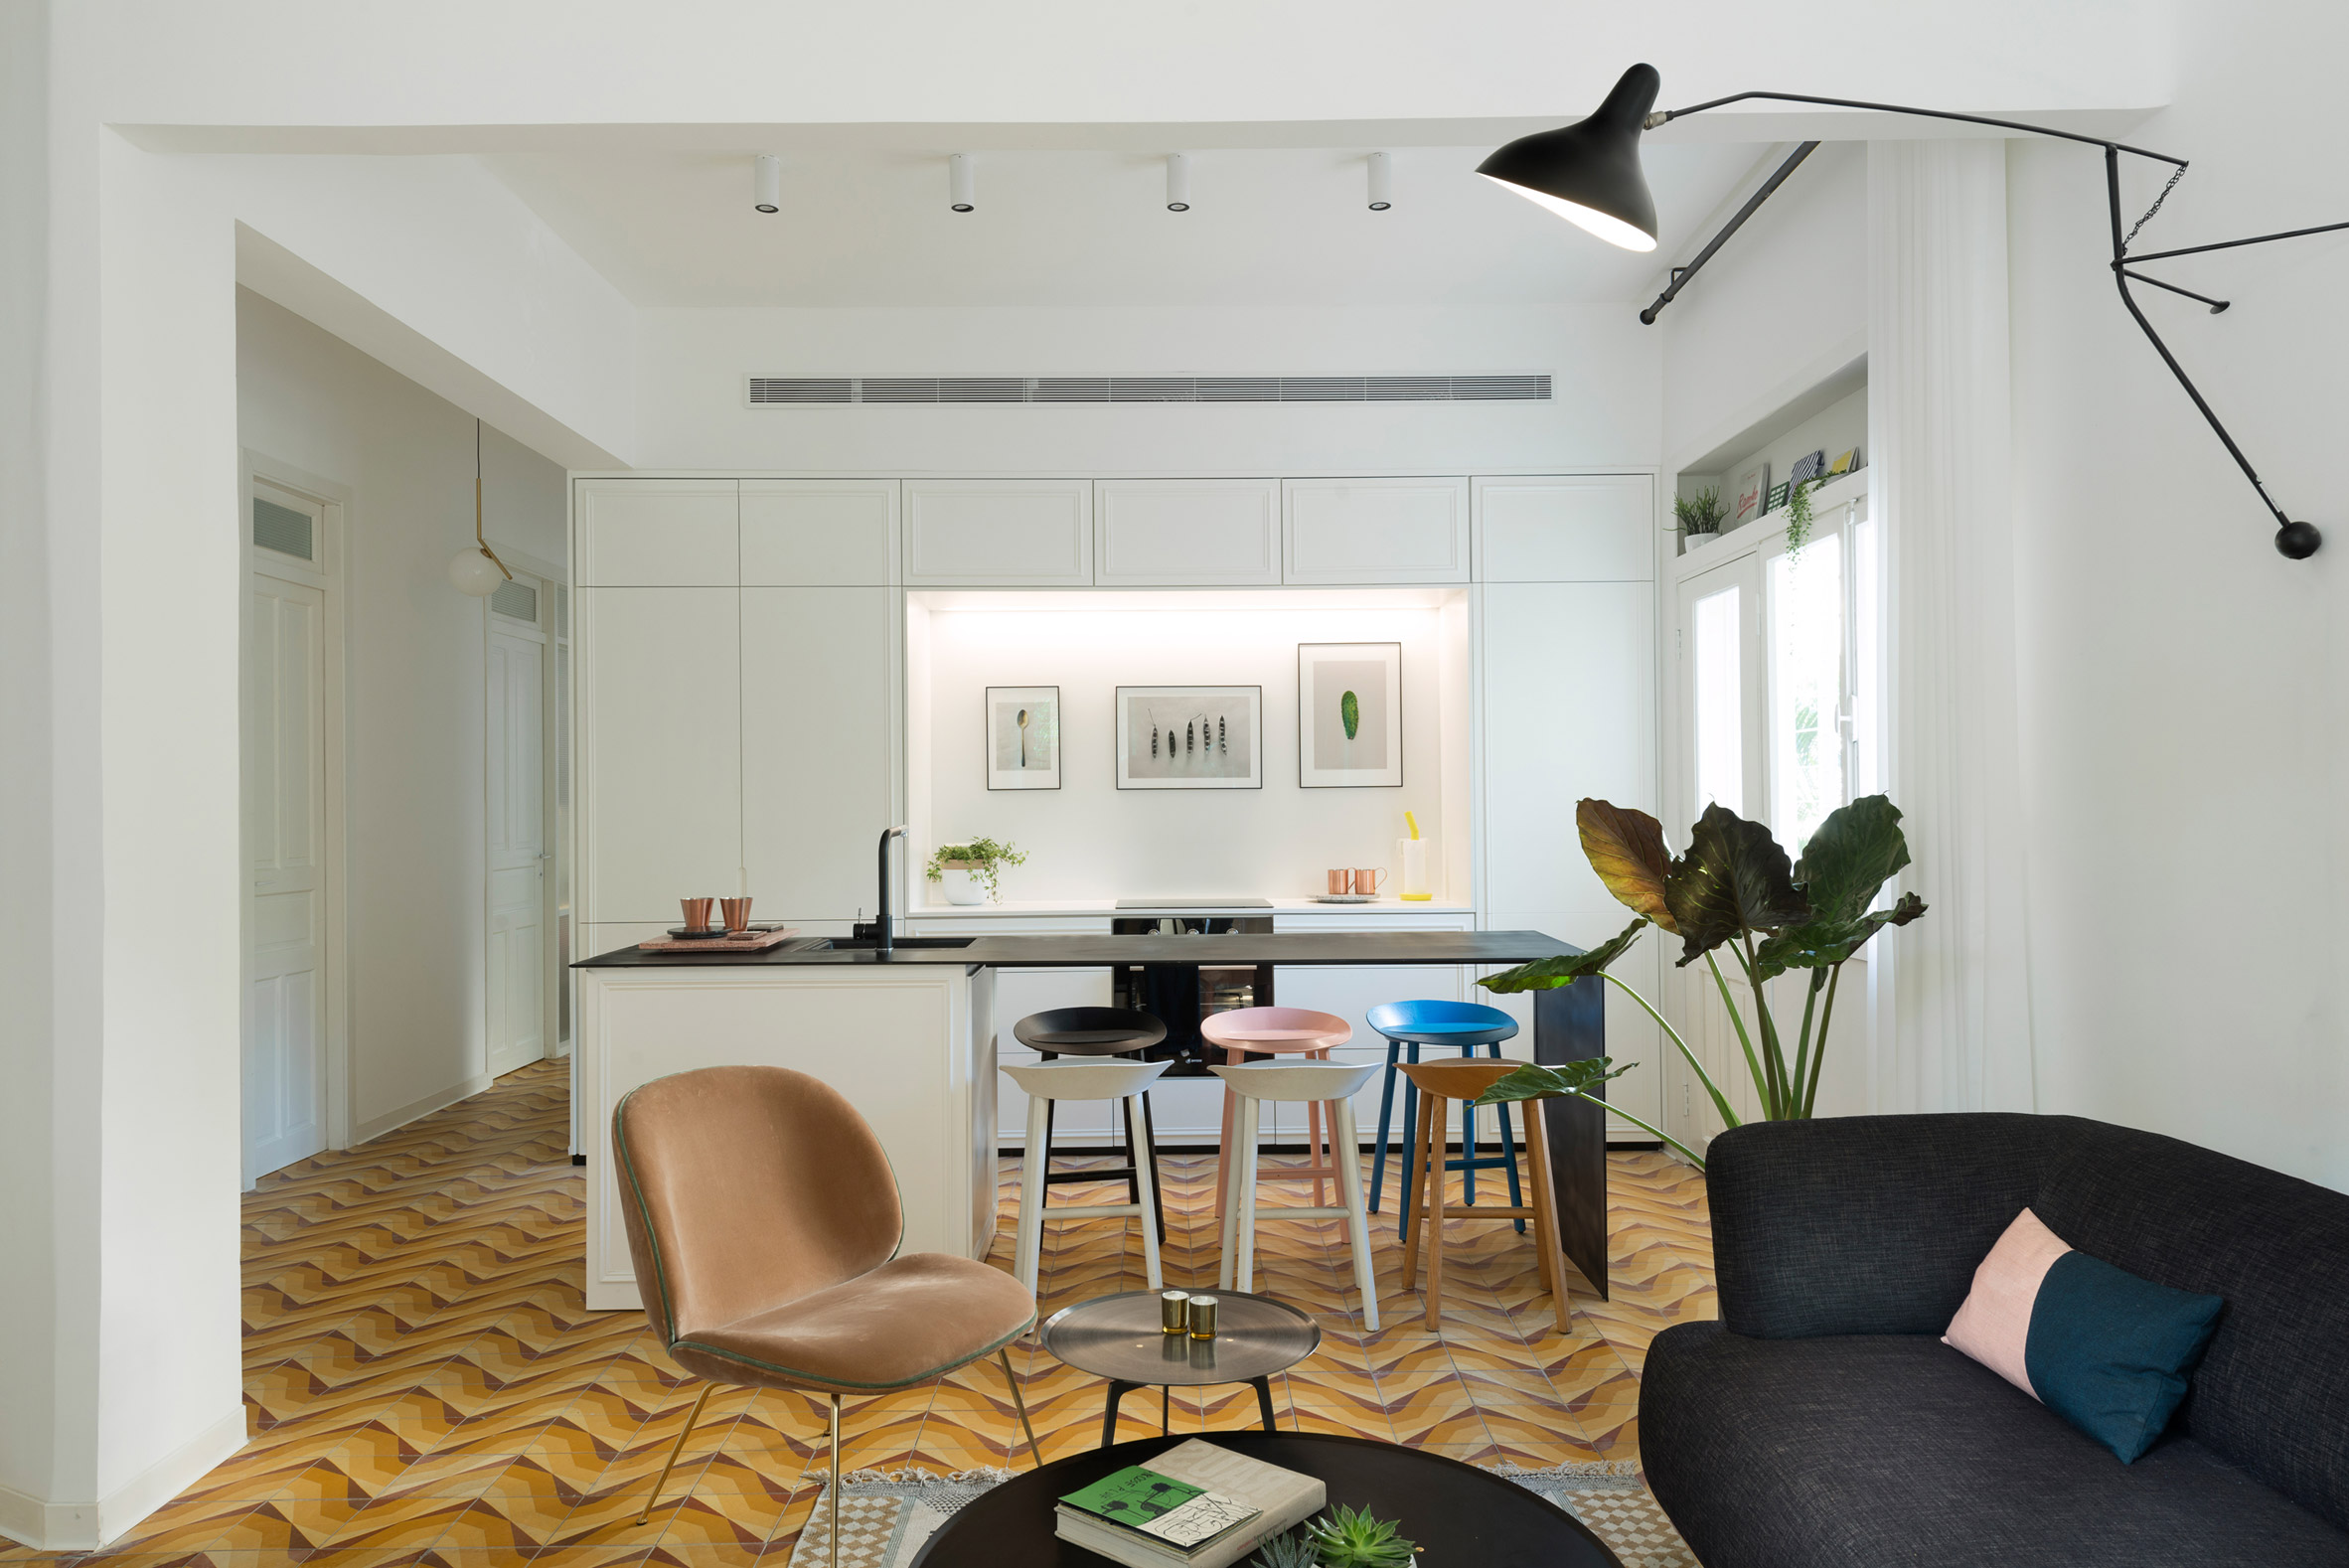 1930s Bauhaus apartment gets gorgeous renovation in Tel Aviv - Curbed